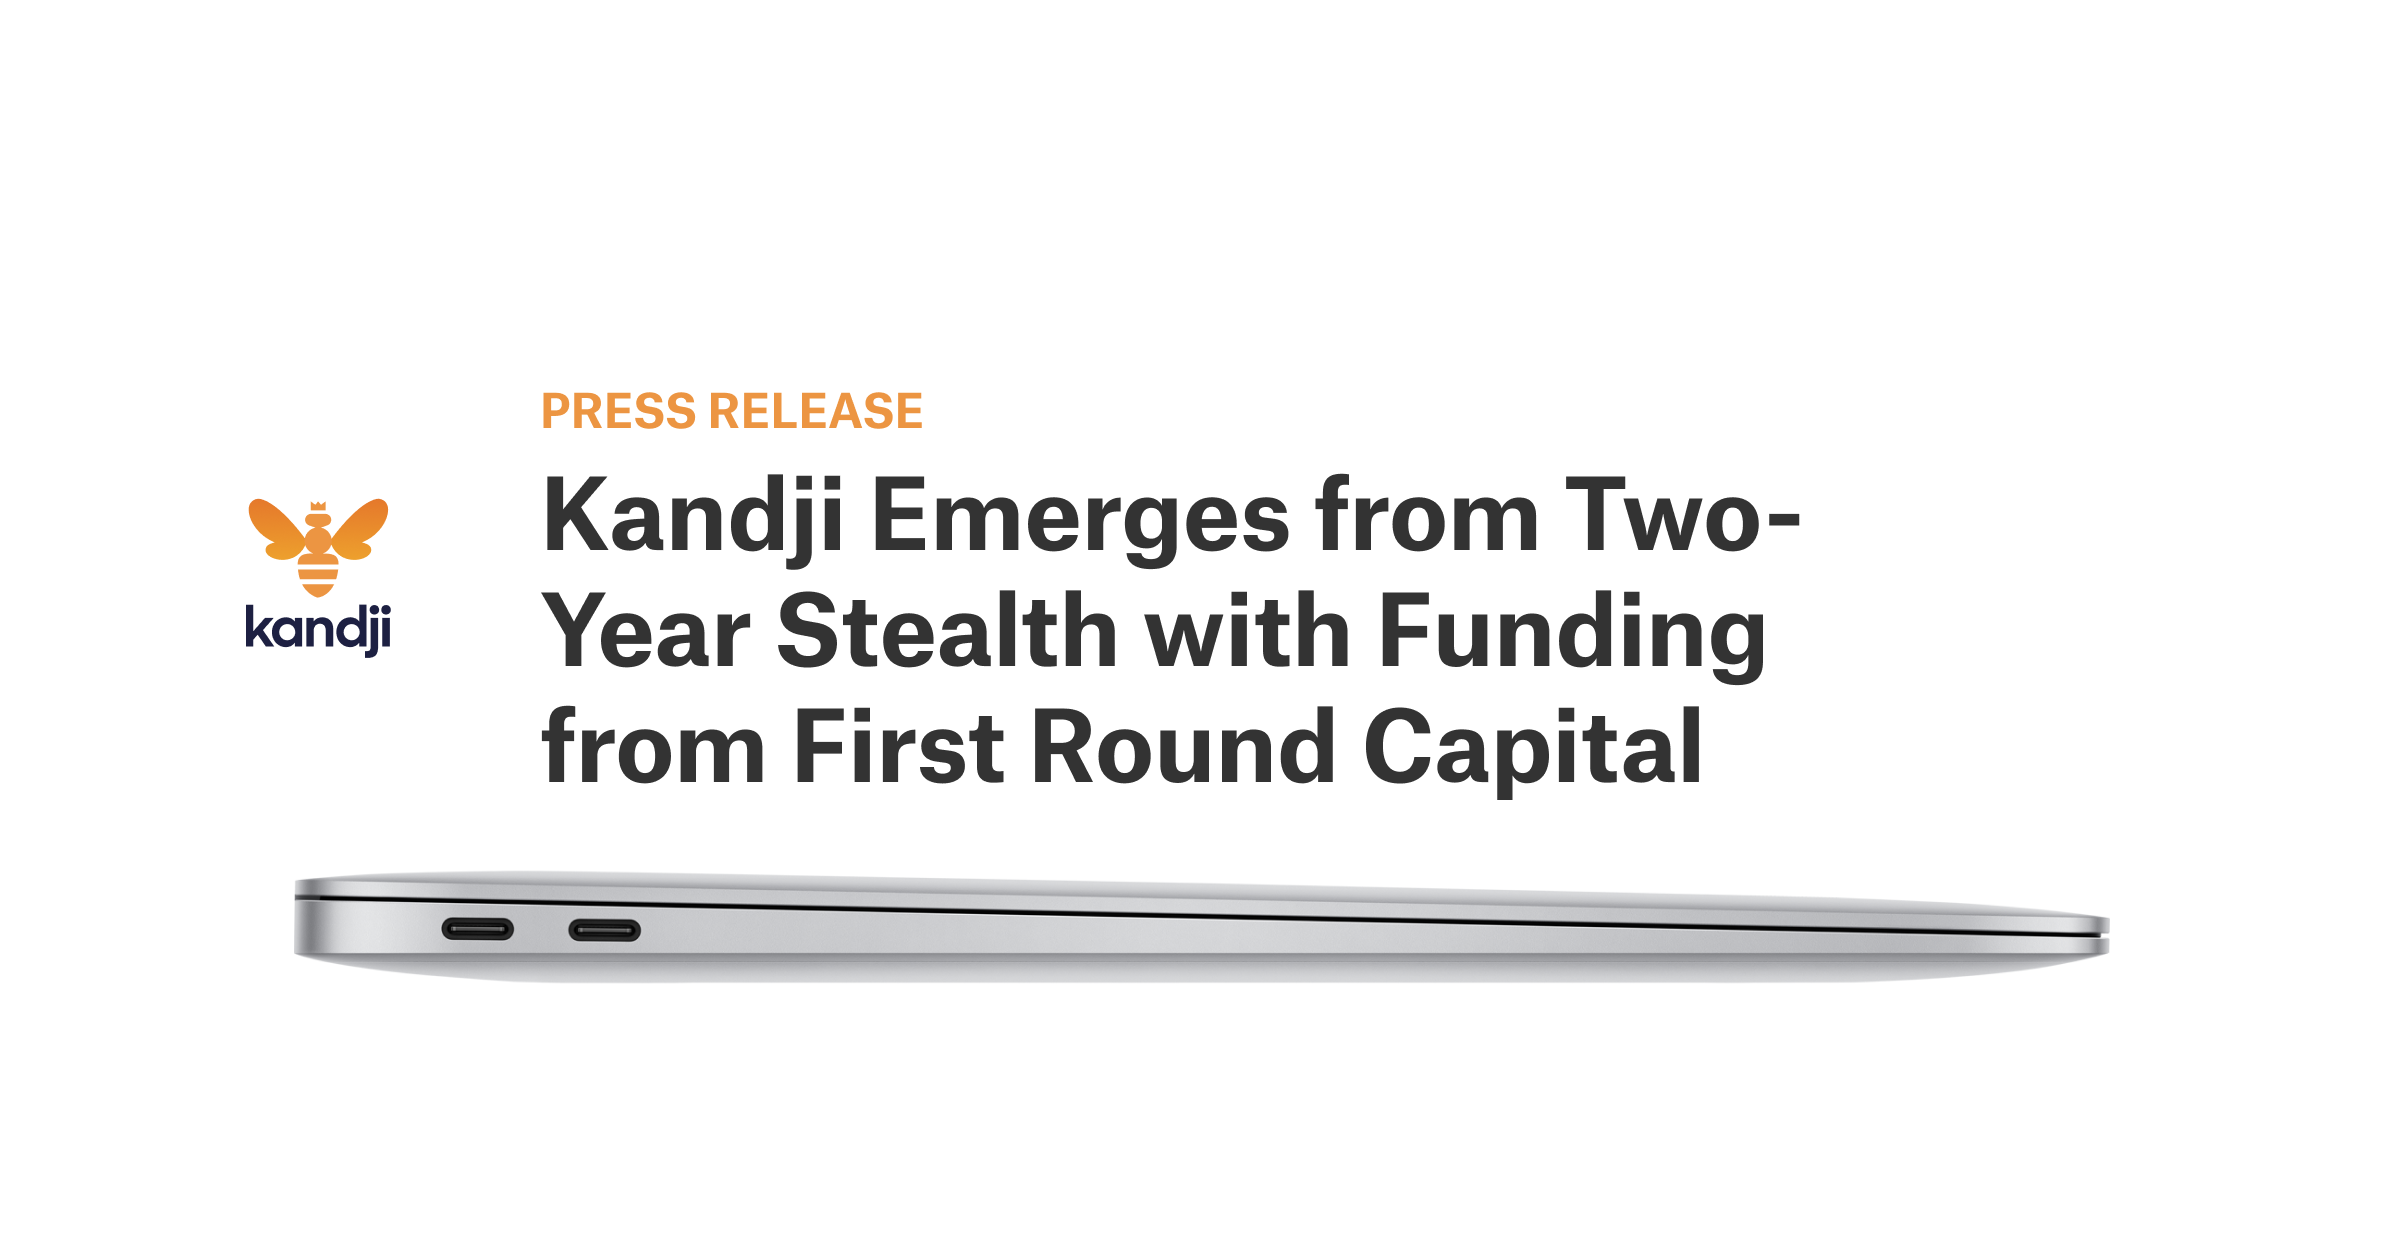 Kandji Apple MDM emerges from stealth with funding from first round capitalapple mdm plus